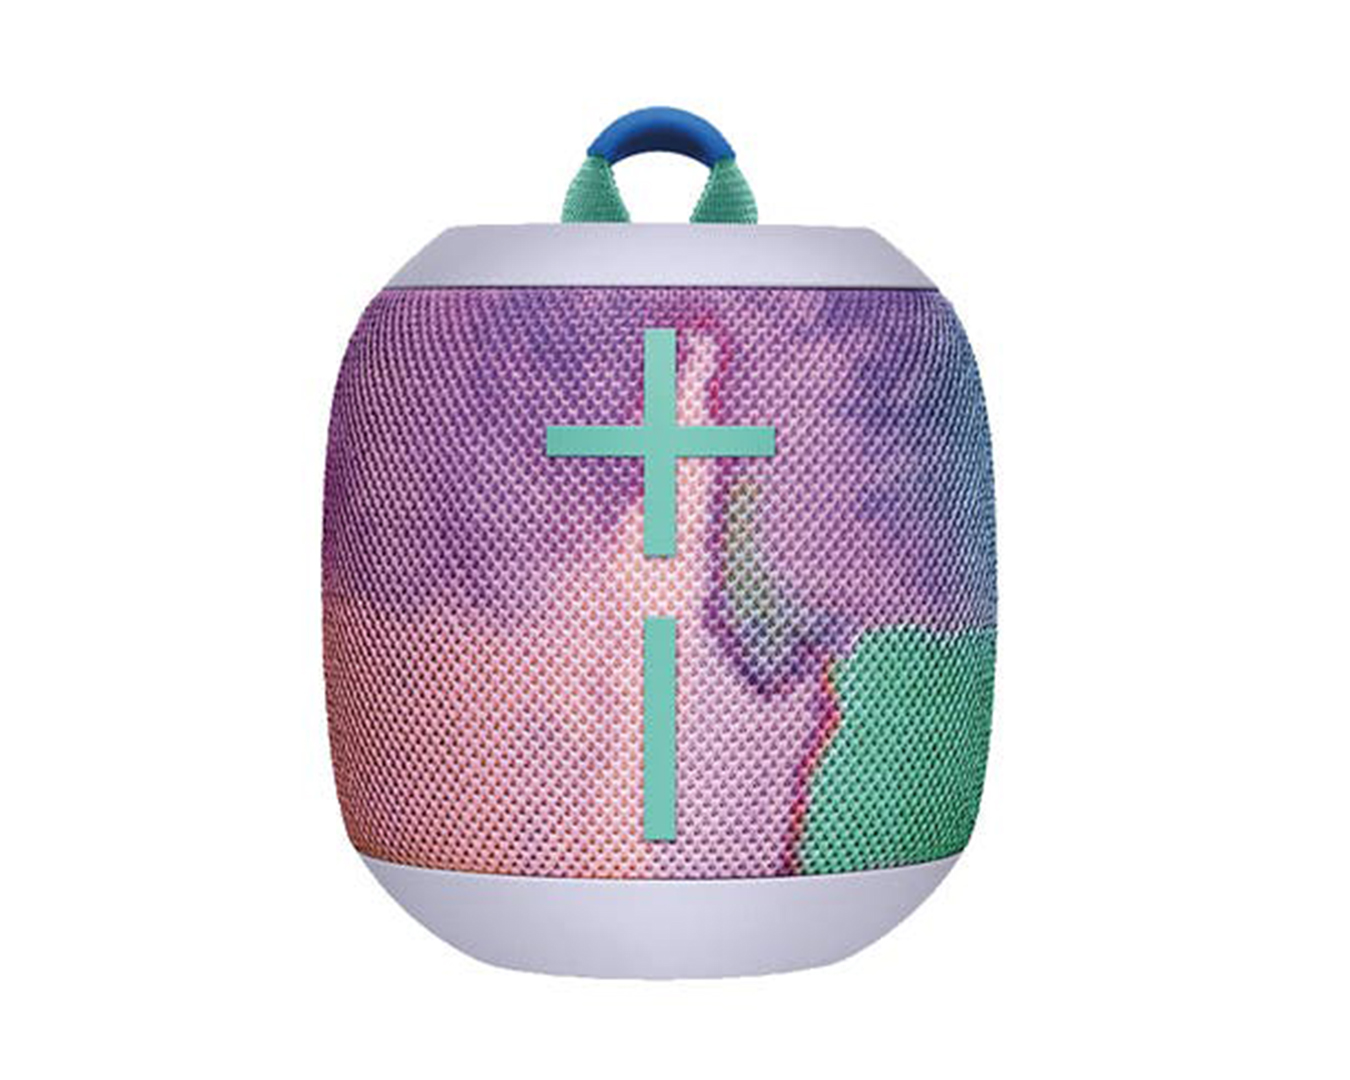 A colourful portable speaker.